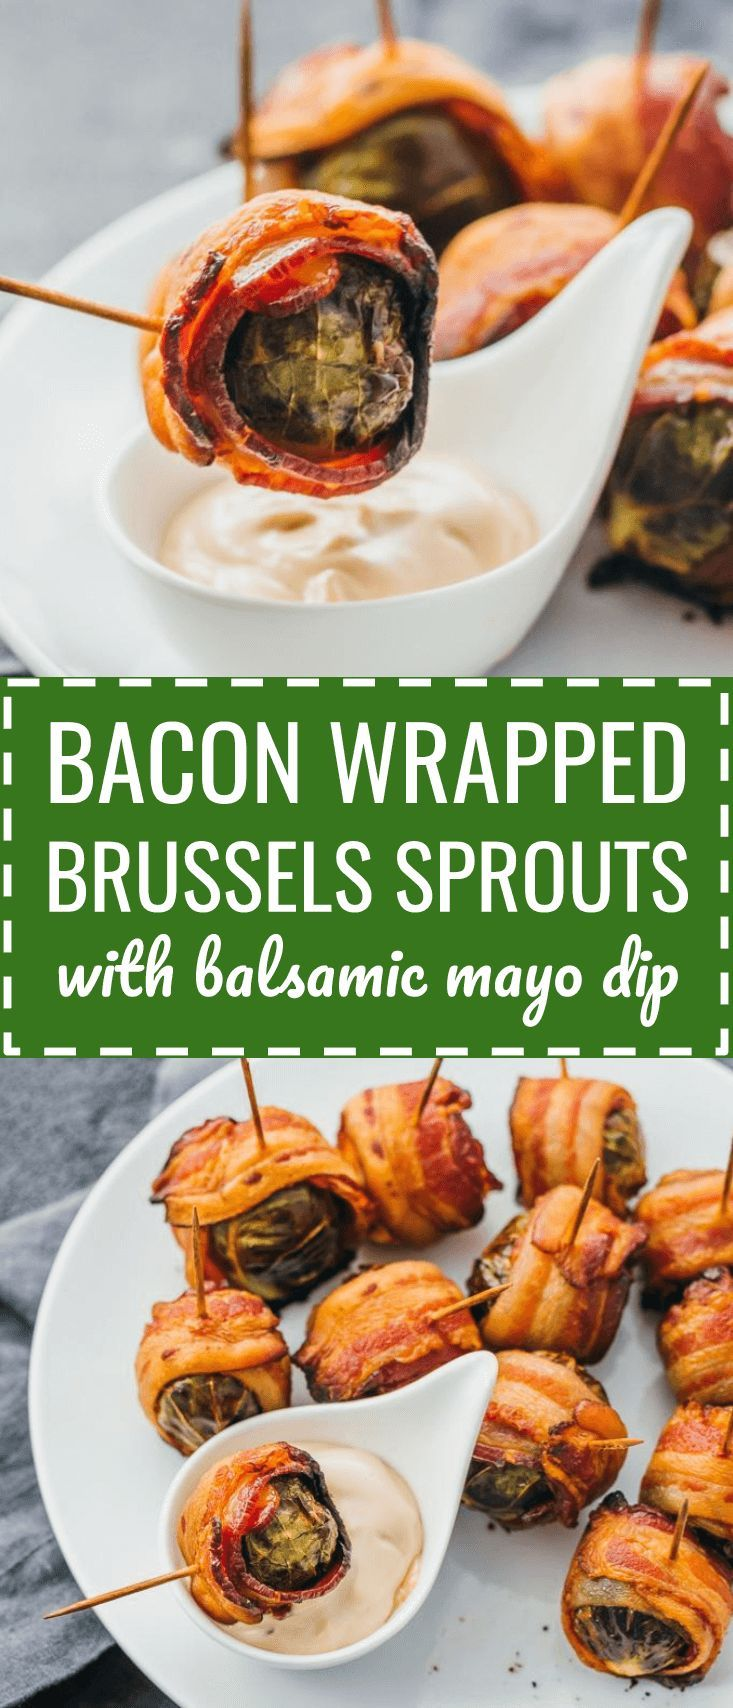 Bacon Wrapped Brussels Sprouts with Balsamic Mayo Dip - Savory Tooth #buffalobrusselsprouts